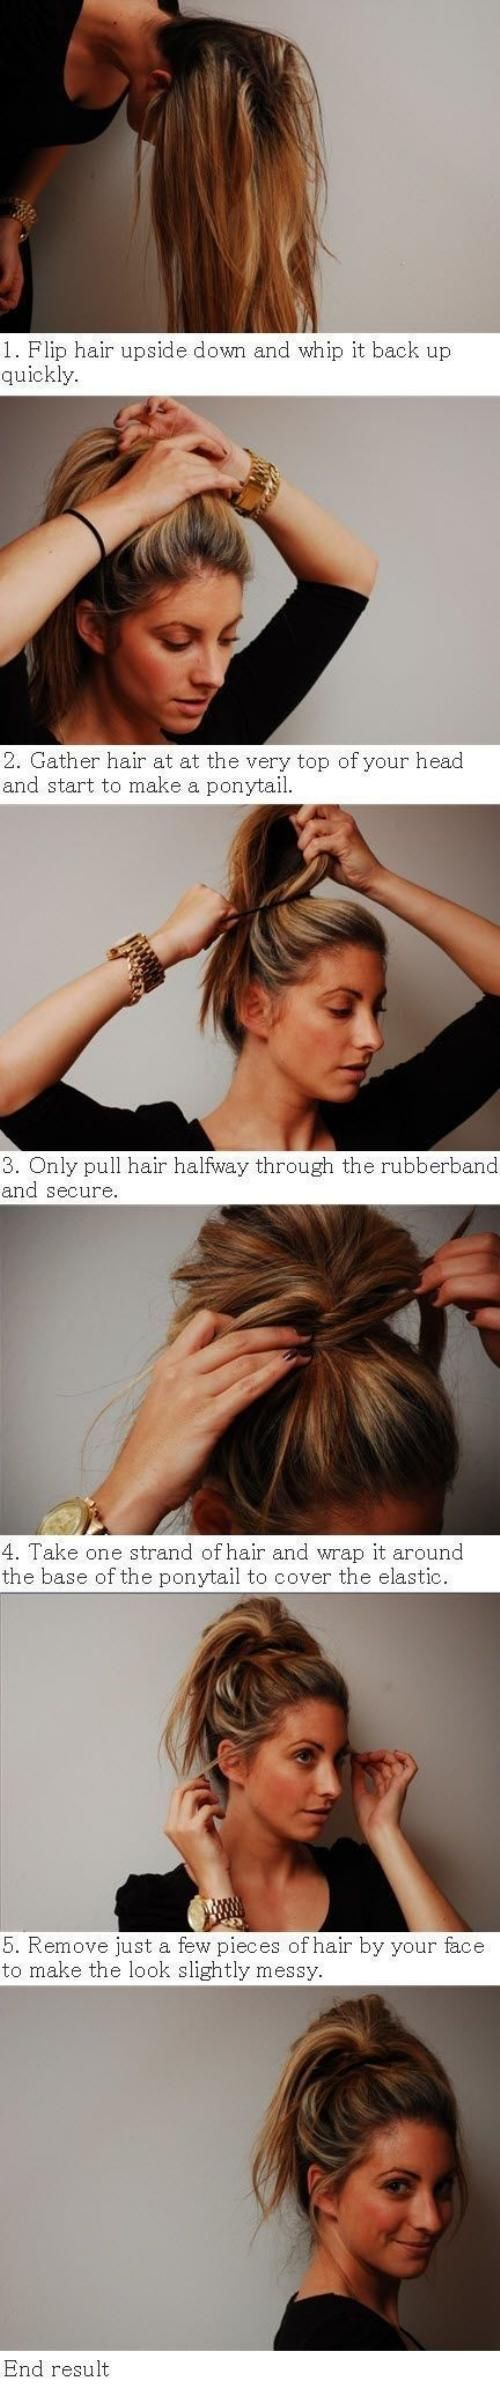 For when my hair gets long enough:)